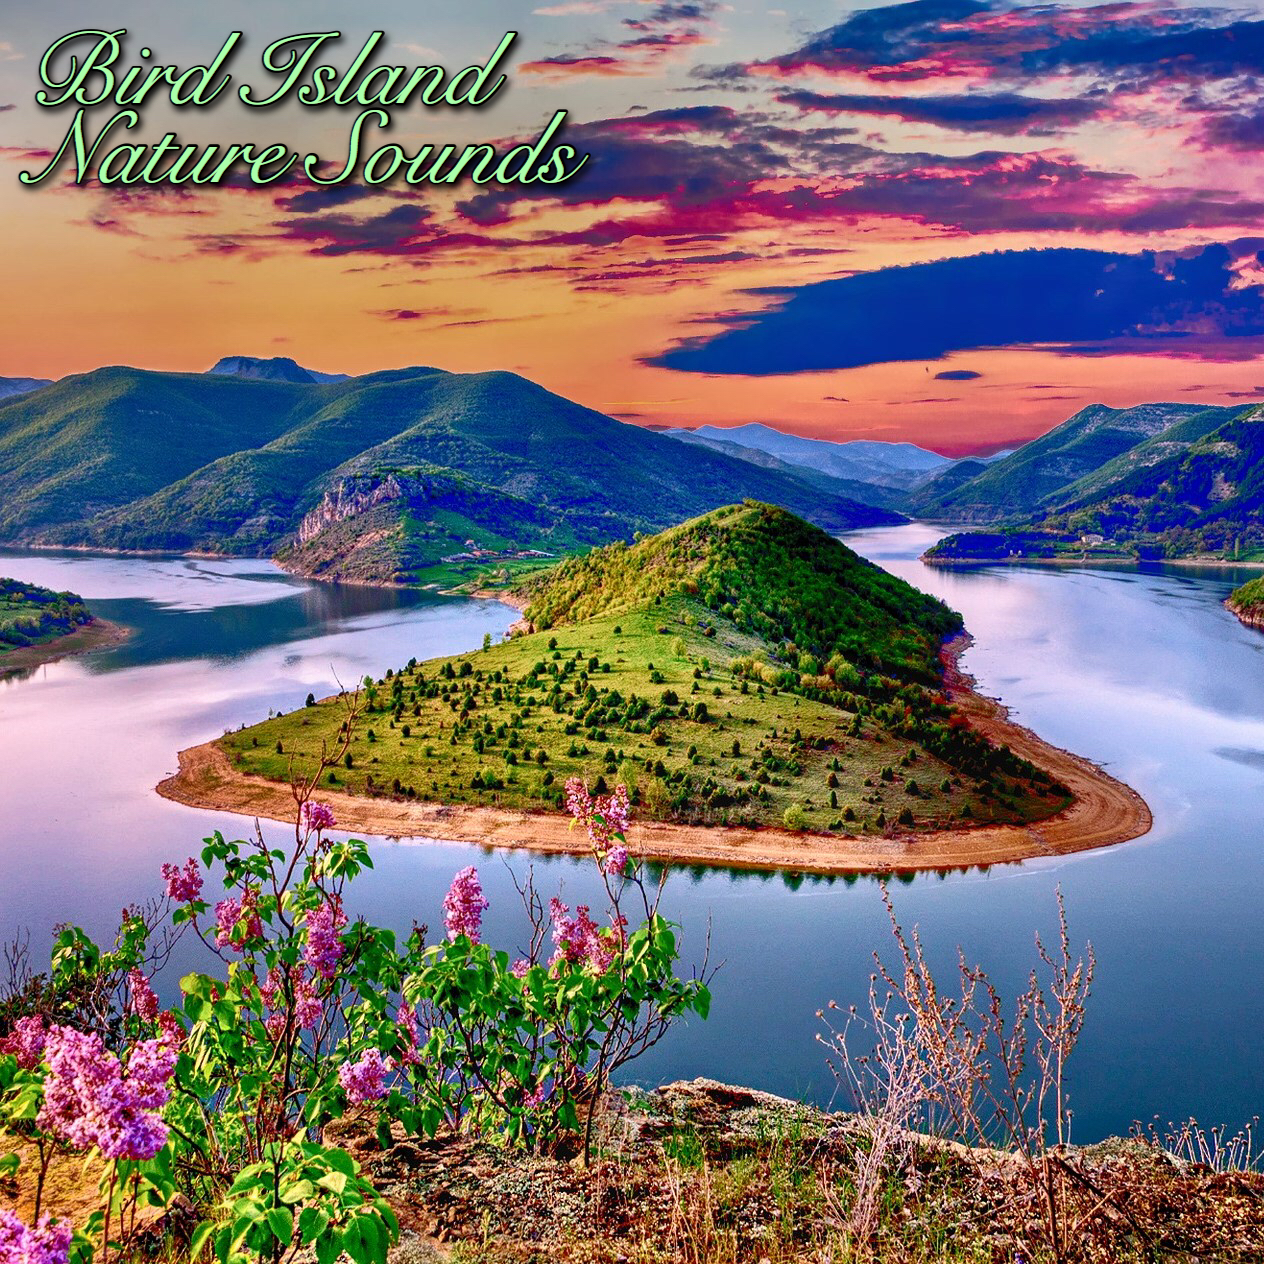 Relaxing sounds of nature download